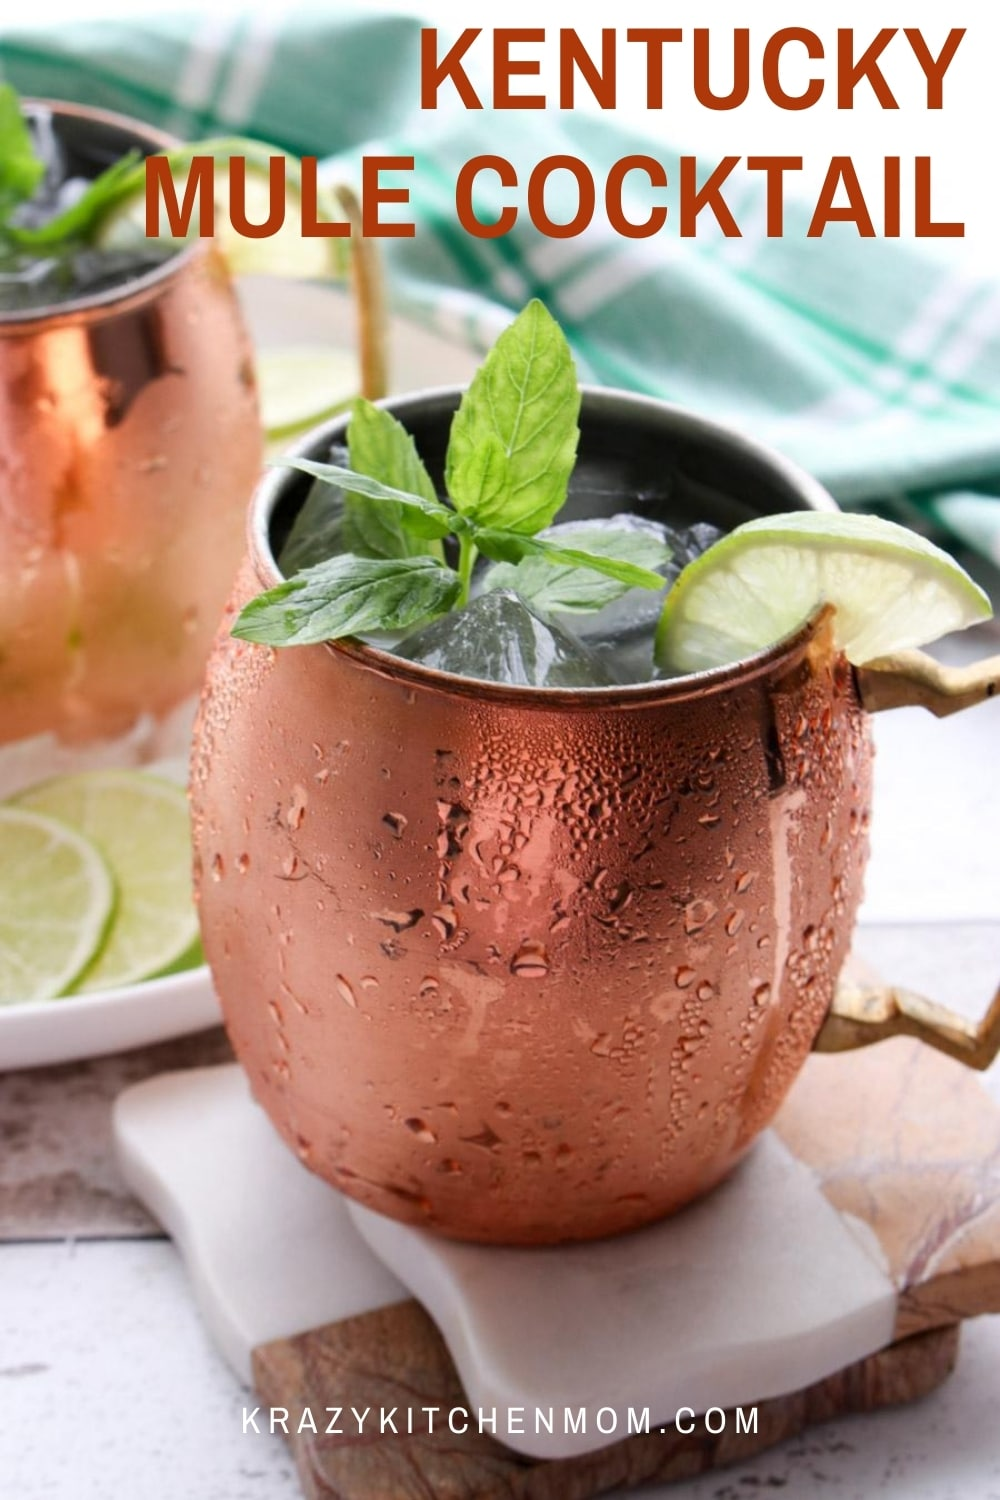 A simple twist on a traditional Moscow Mule using bourbon instead of vodka. Invite your family and friends to join you for a casual evening on the patio with this delightfully cold and refreshing Kentucky Mule Cocktail. via @krazykitchenmom